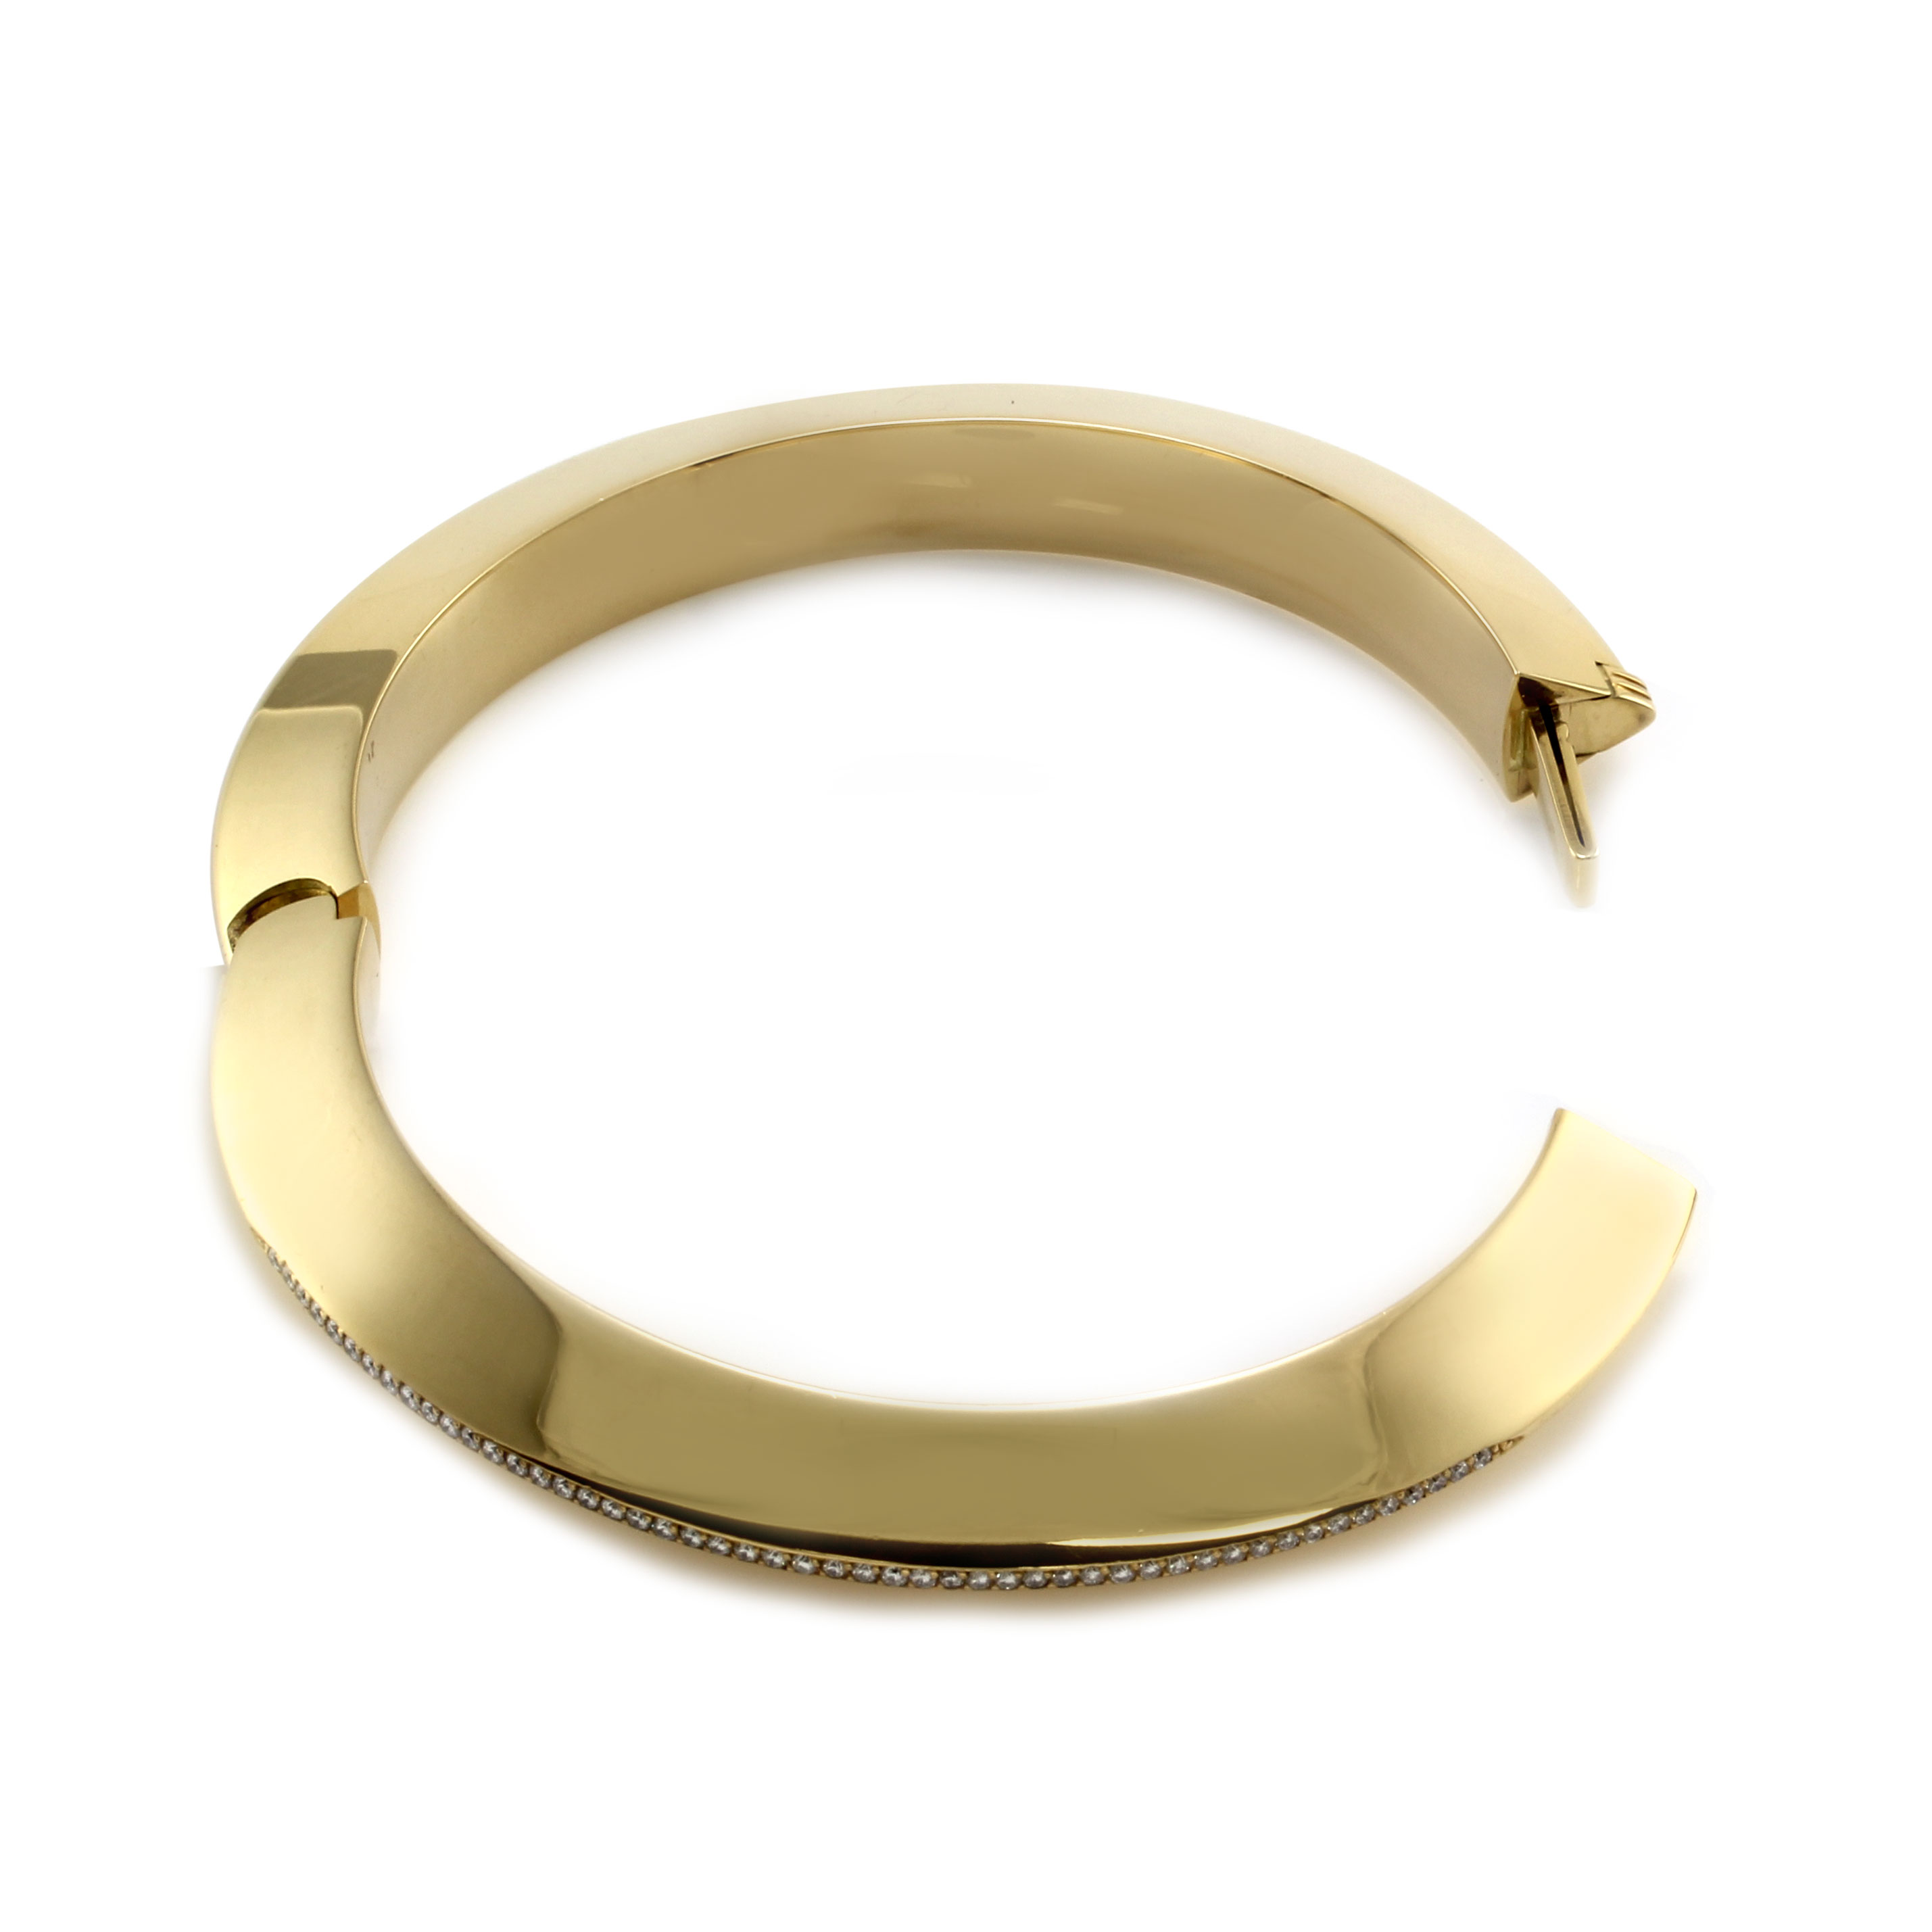 Isabelle Fa Pave Diamond Bangle Bracelet in Gold